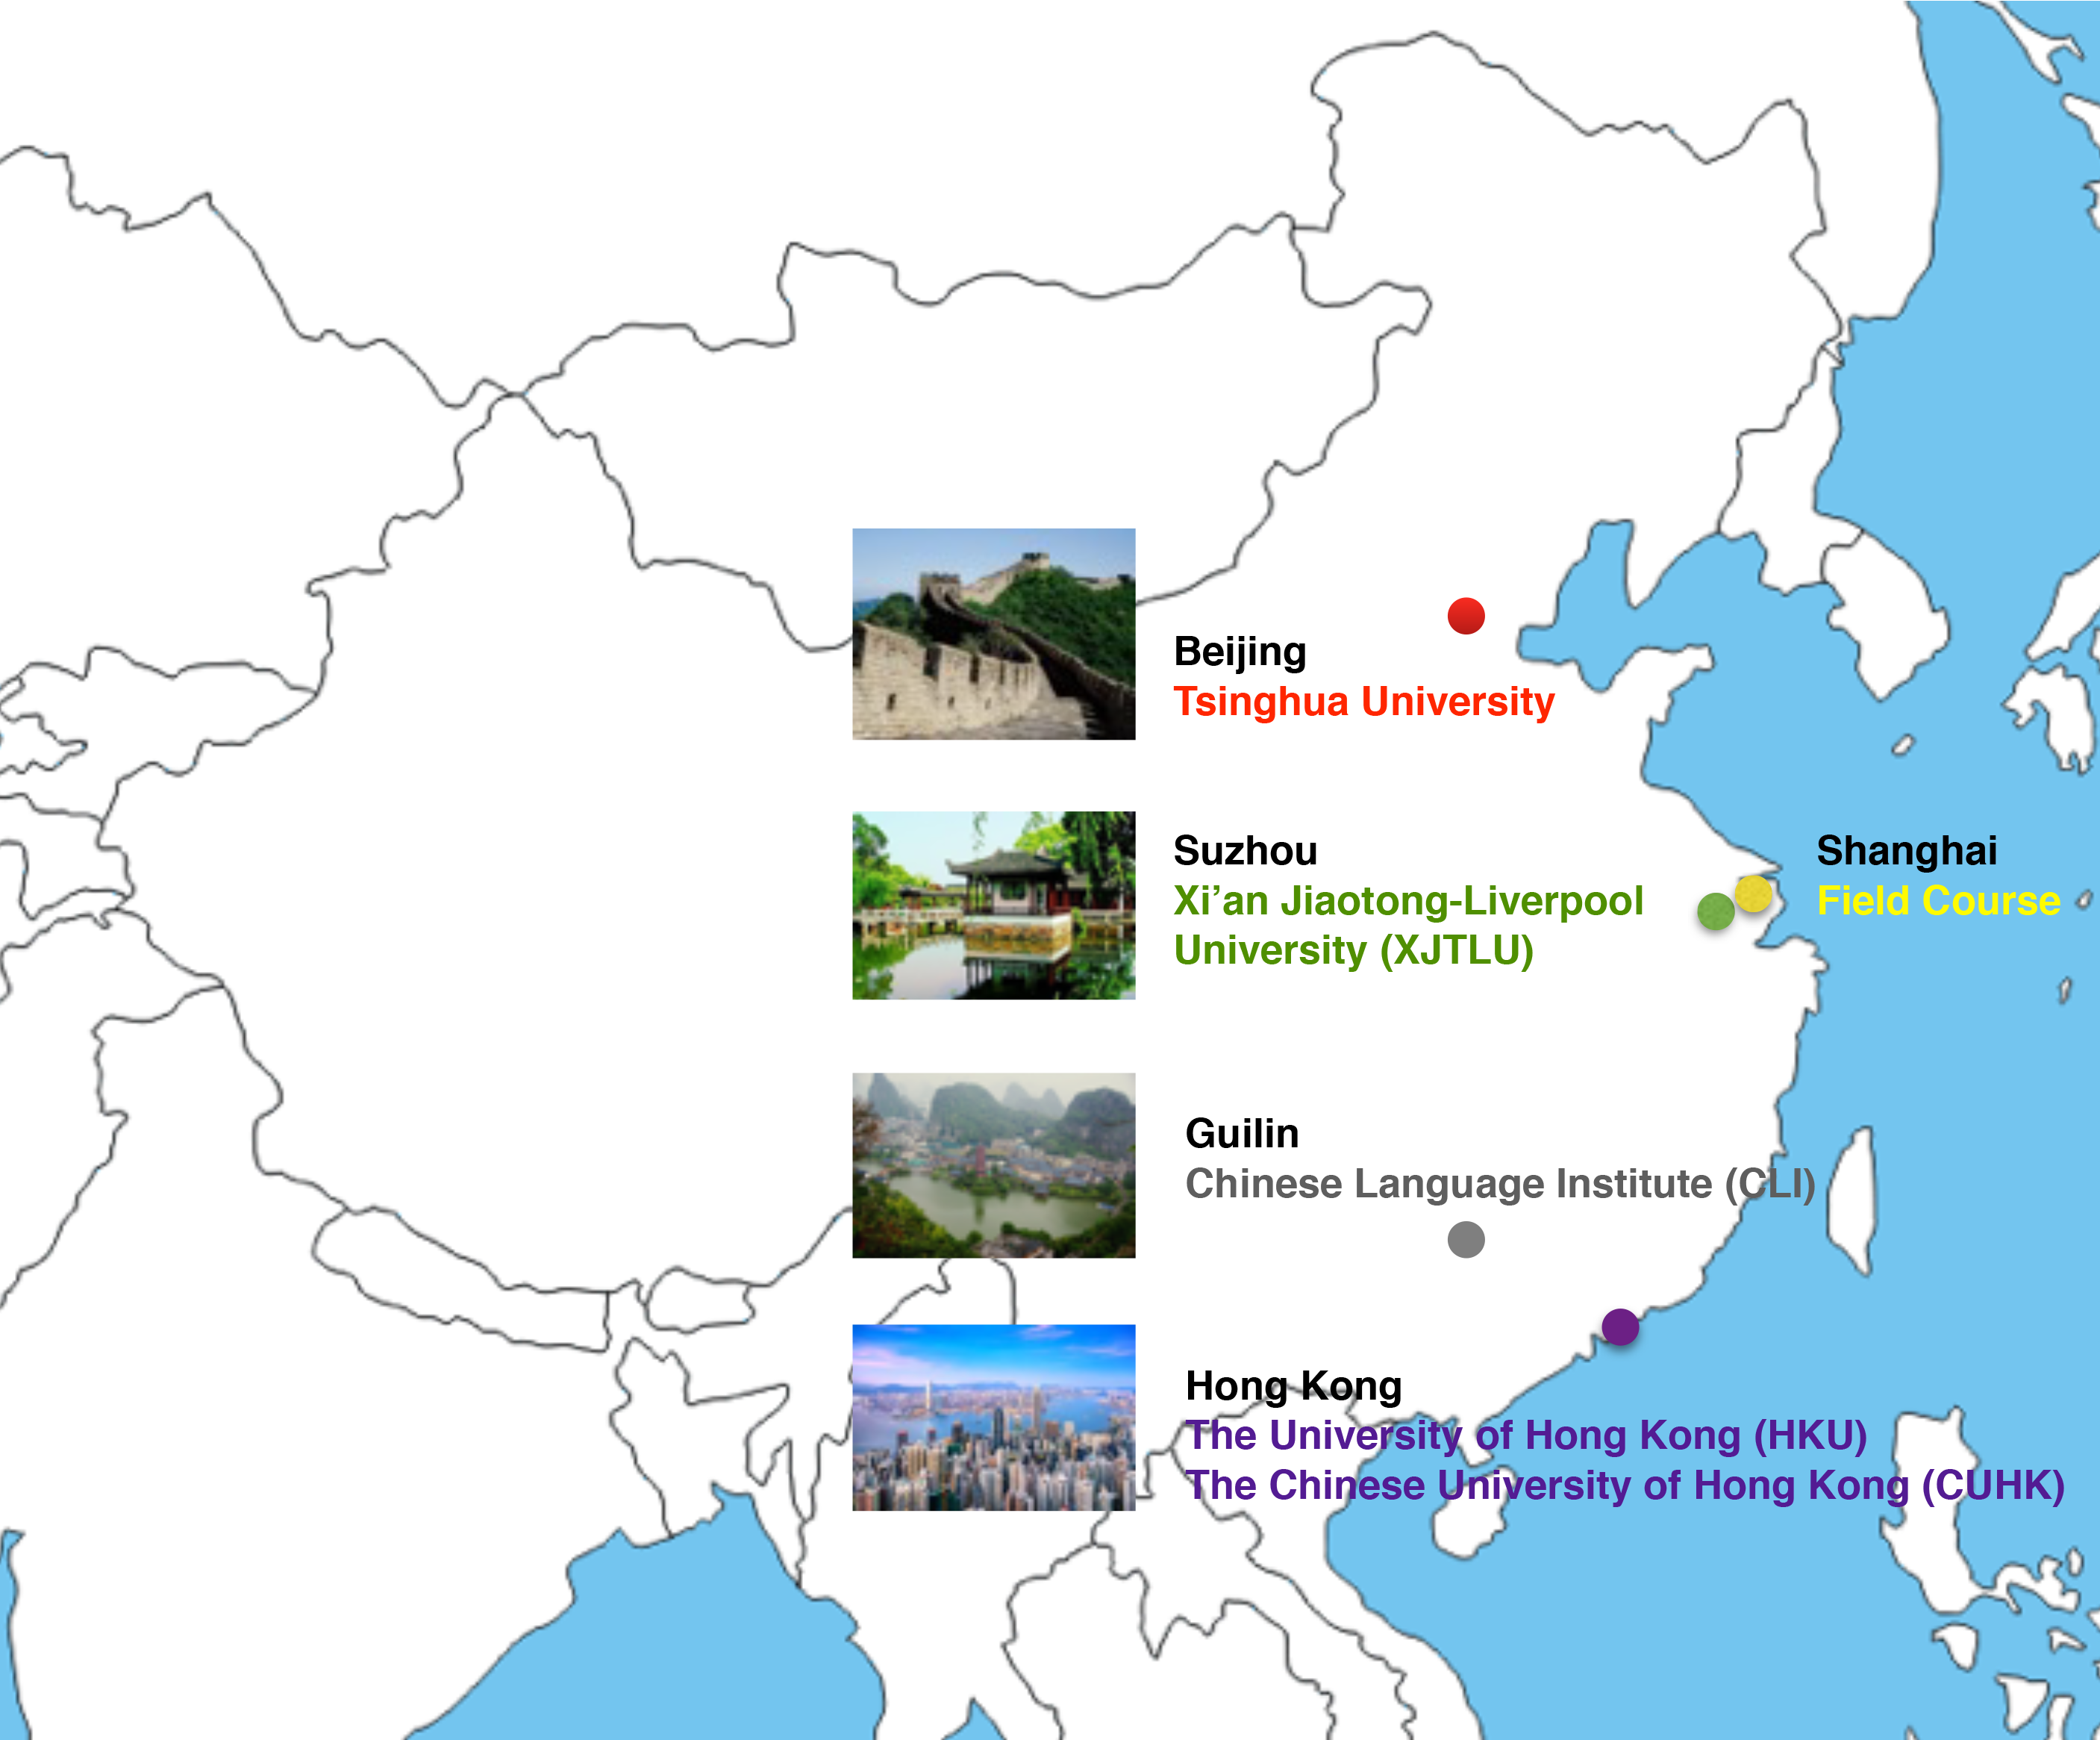 China Studies Exchange Destinations Map